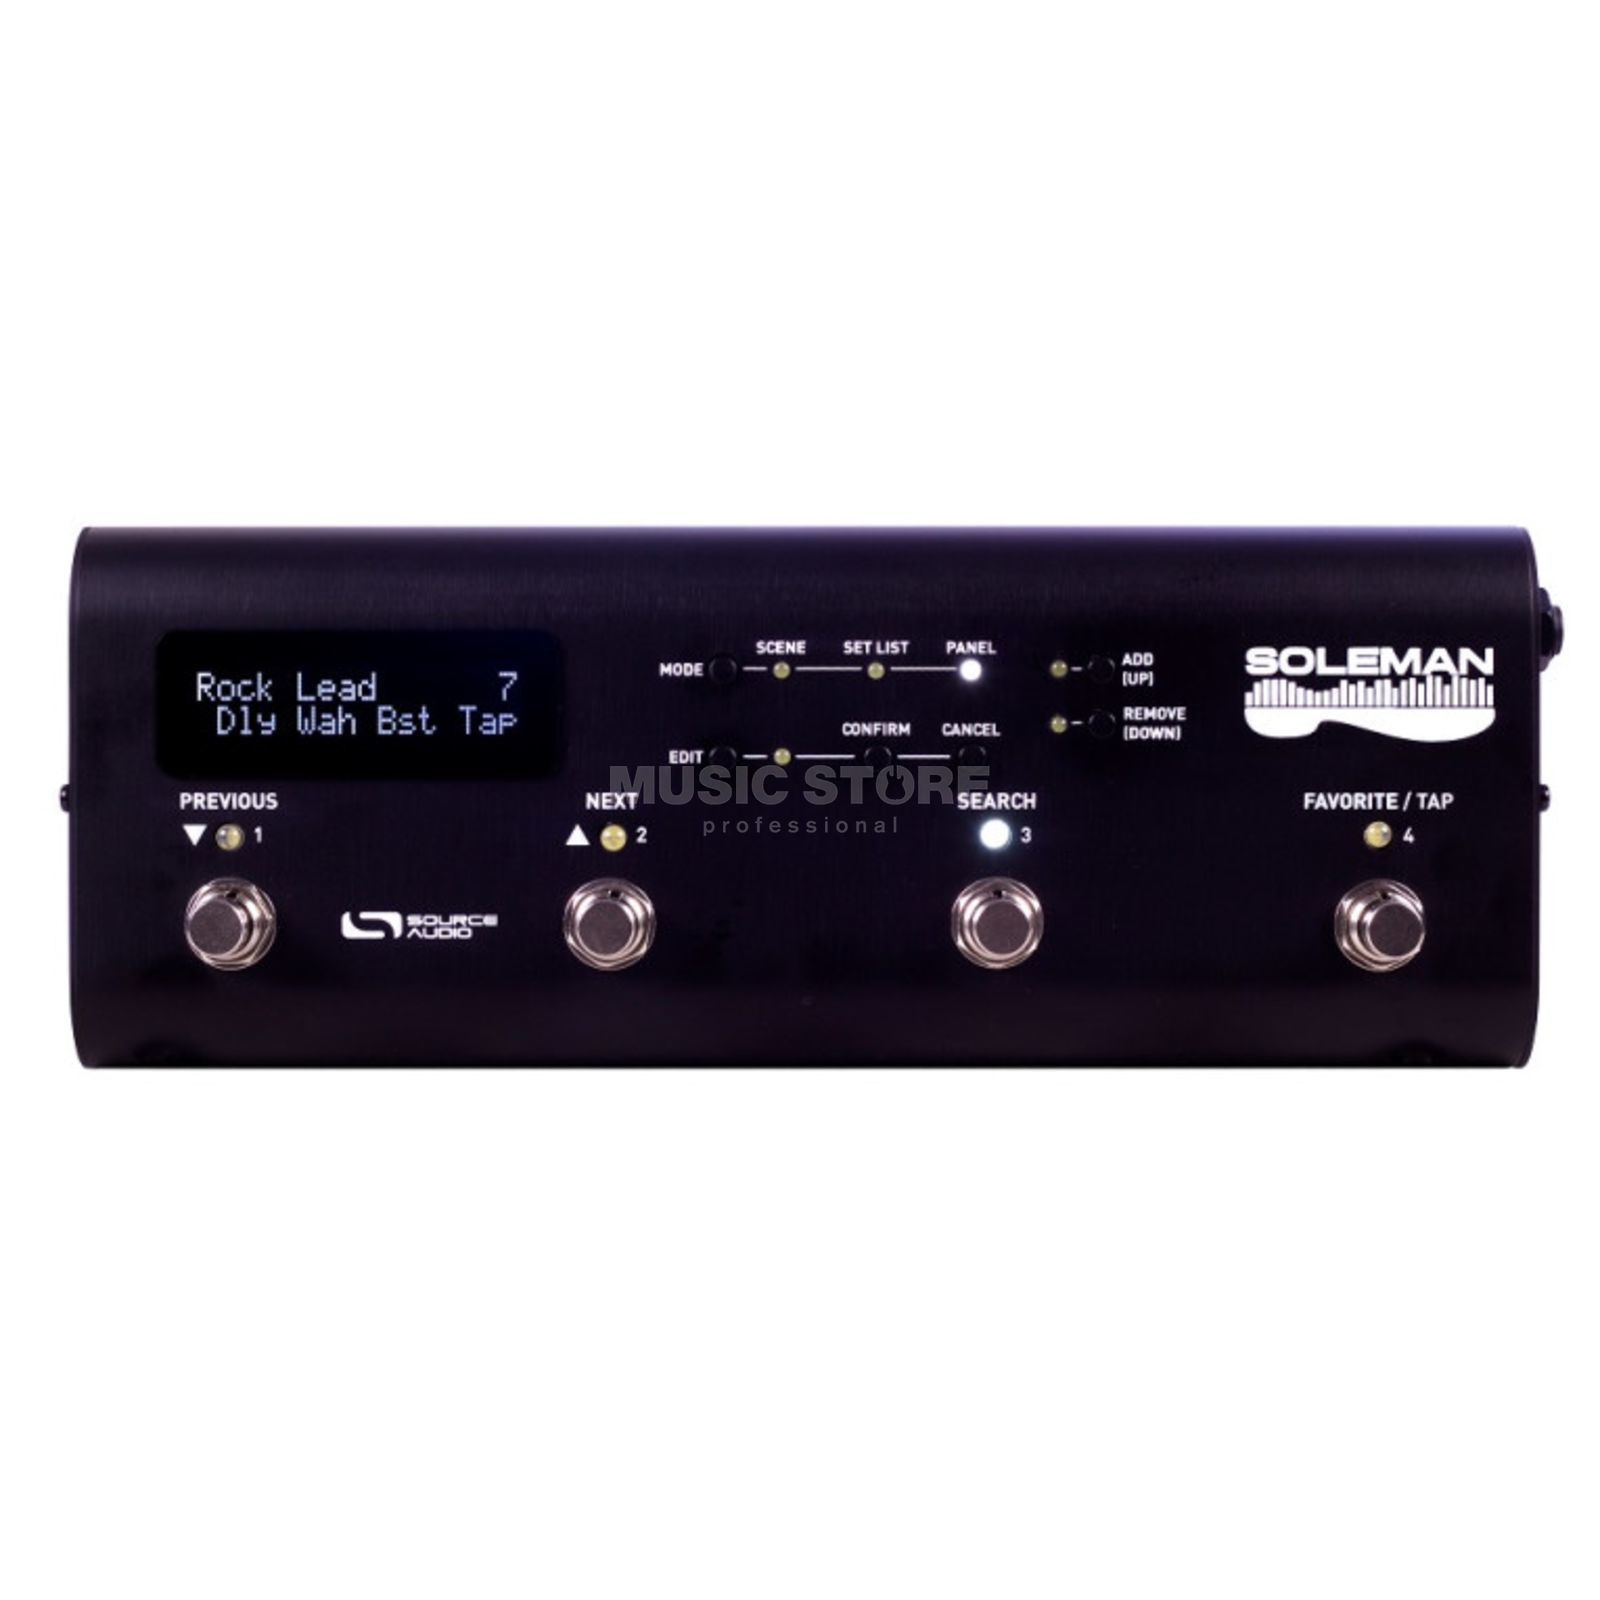 Source Audio Soleman Product Image